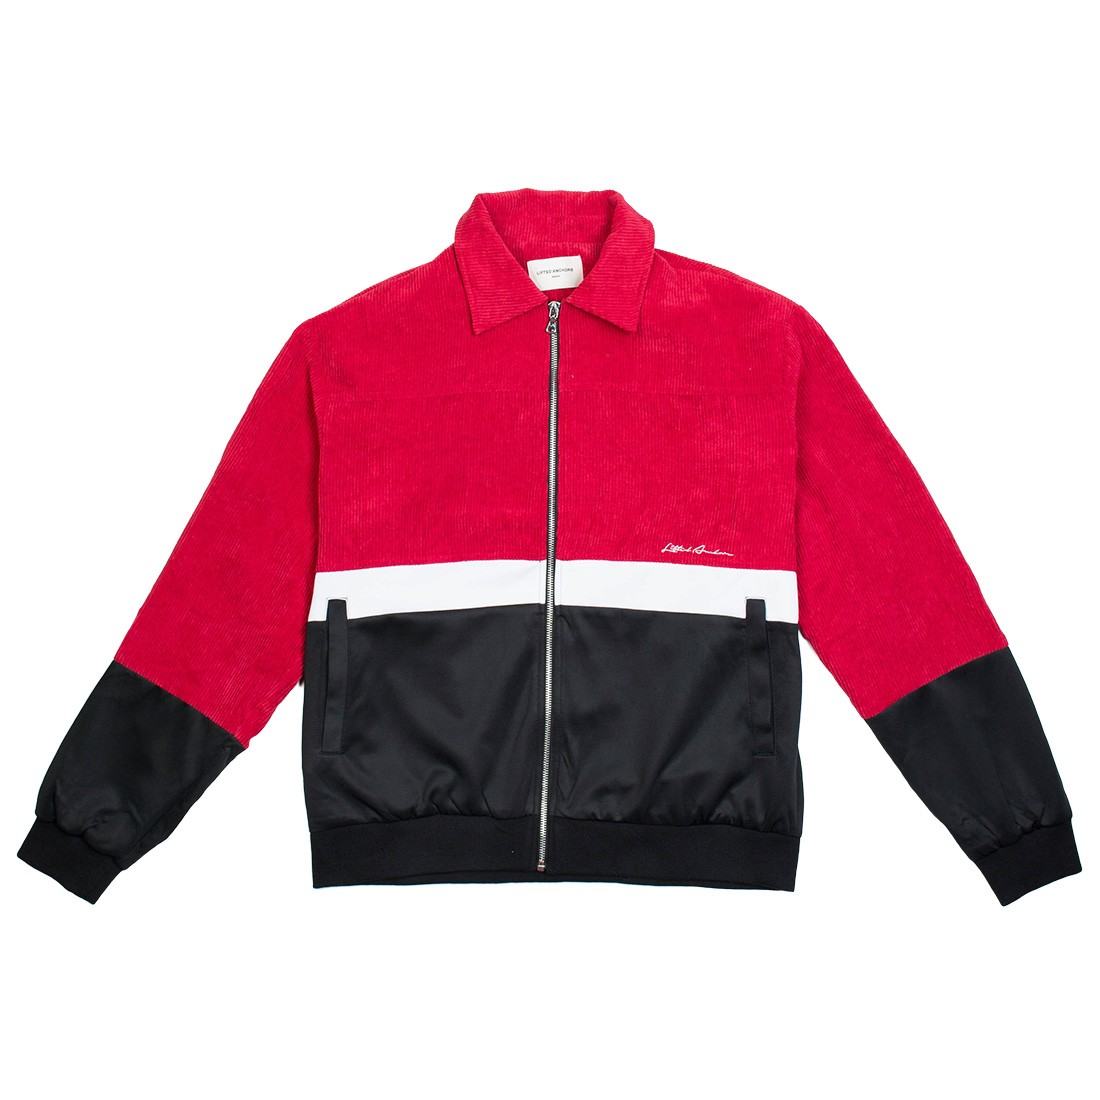 Lifted Anchors Men Link Corduroy Track jacket (red / black)